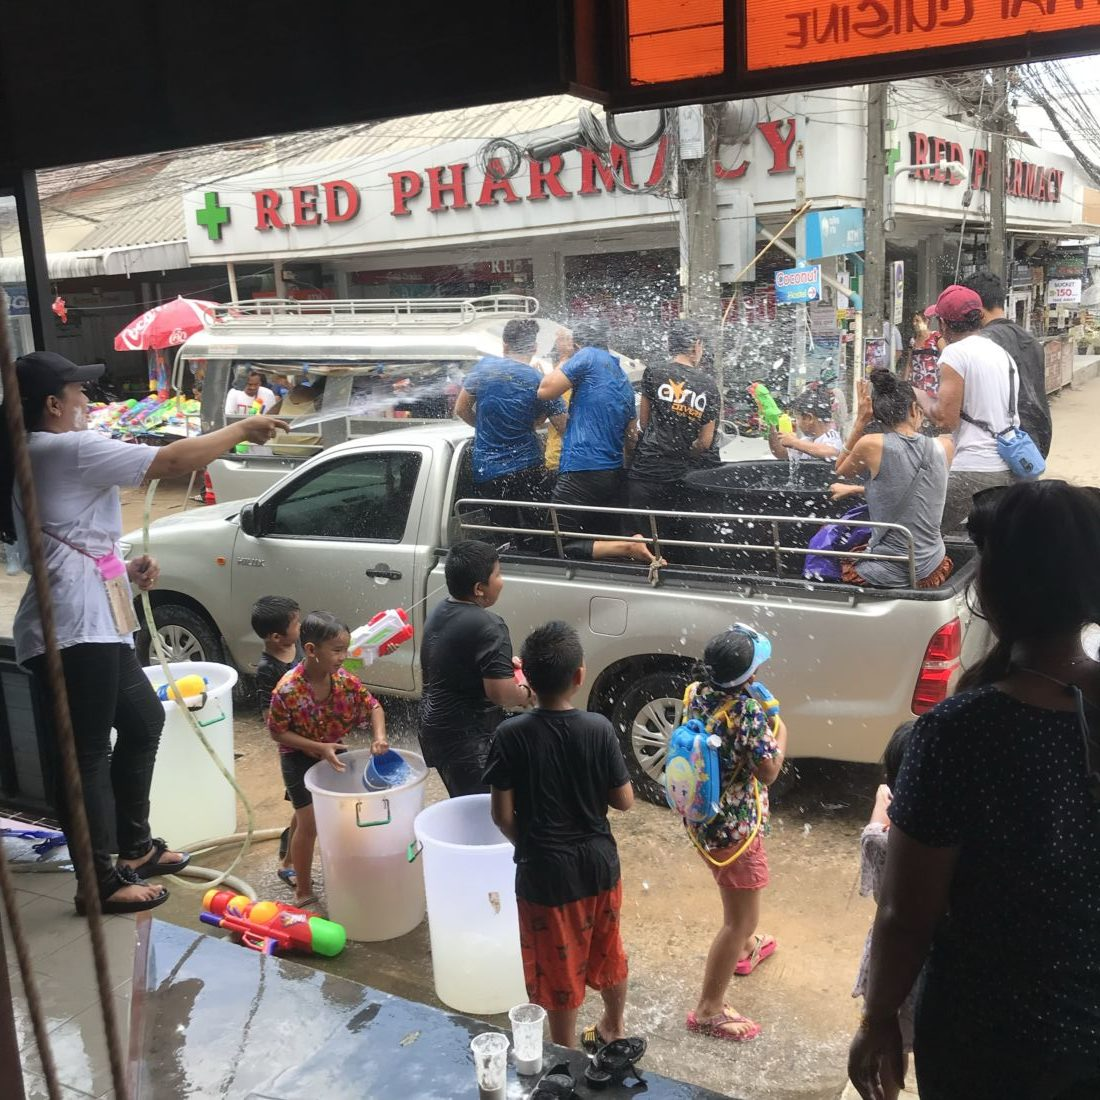 July Songkran plans pushed back to later in the year | The Thaiger